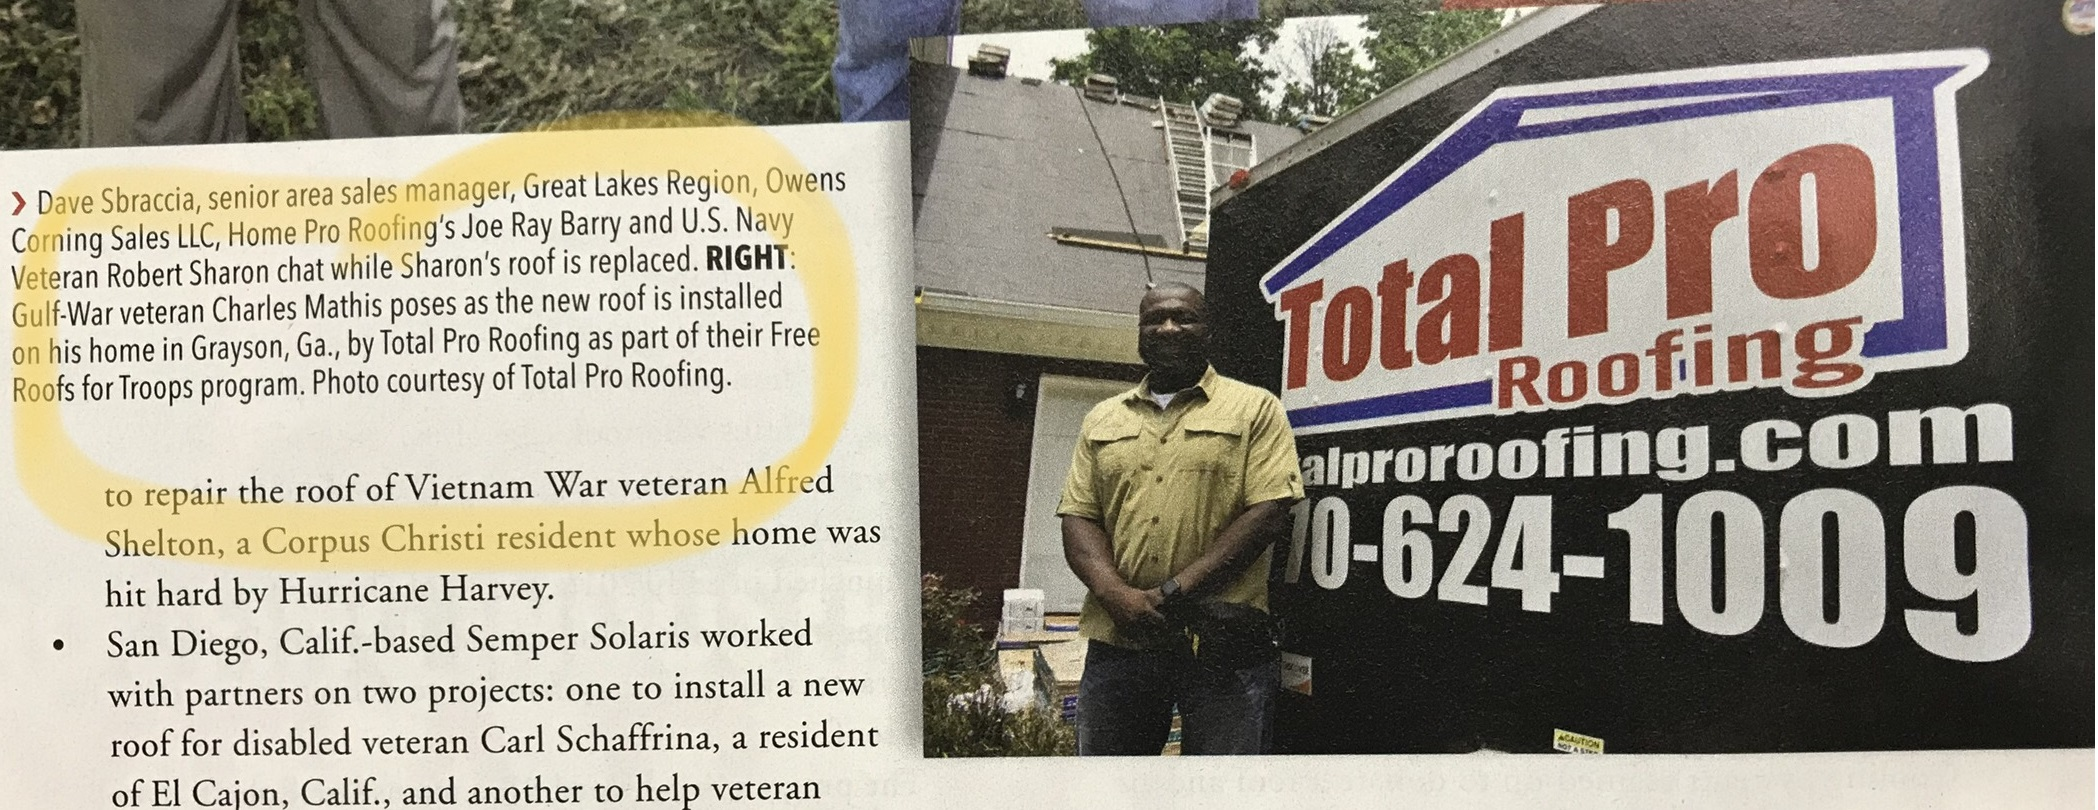 Total Pro Roofing - Roofing Contractor Magazine November 2018